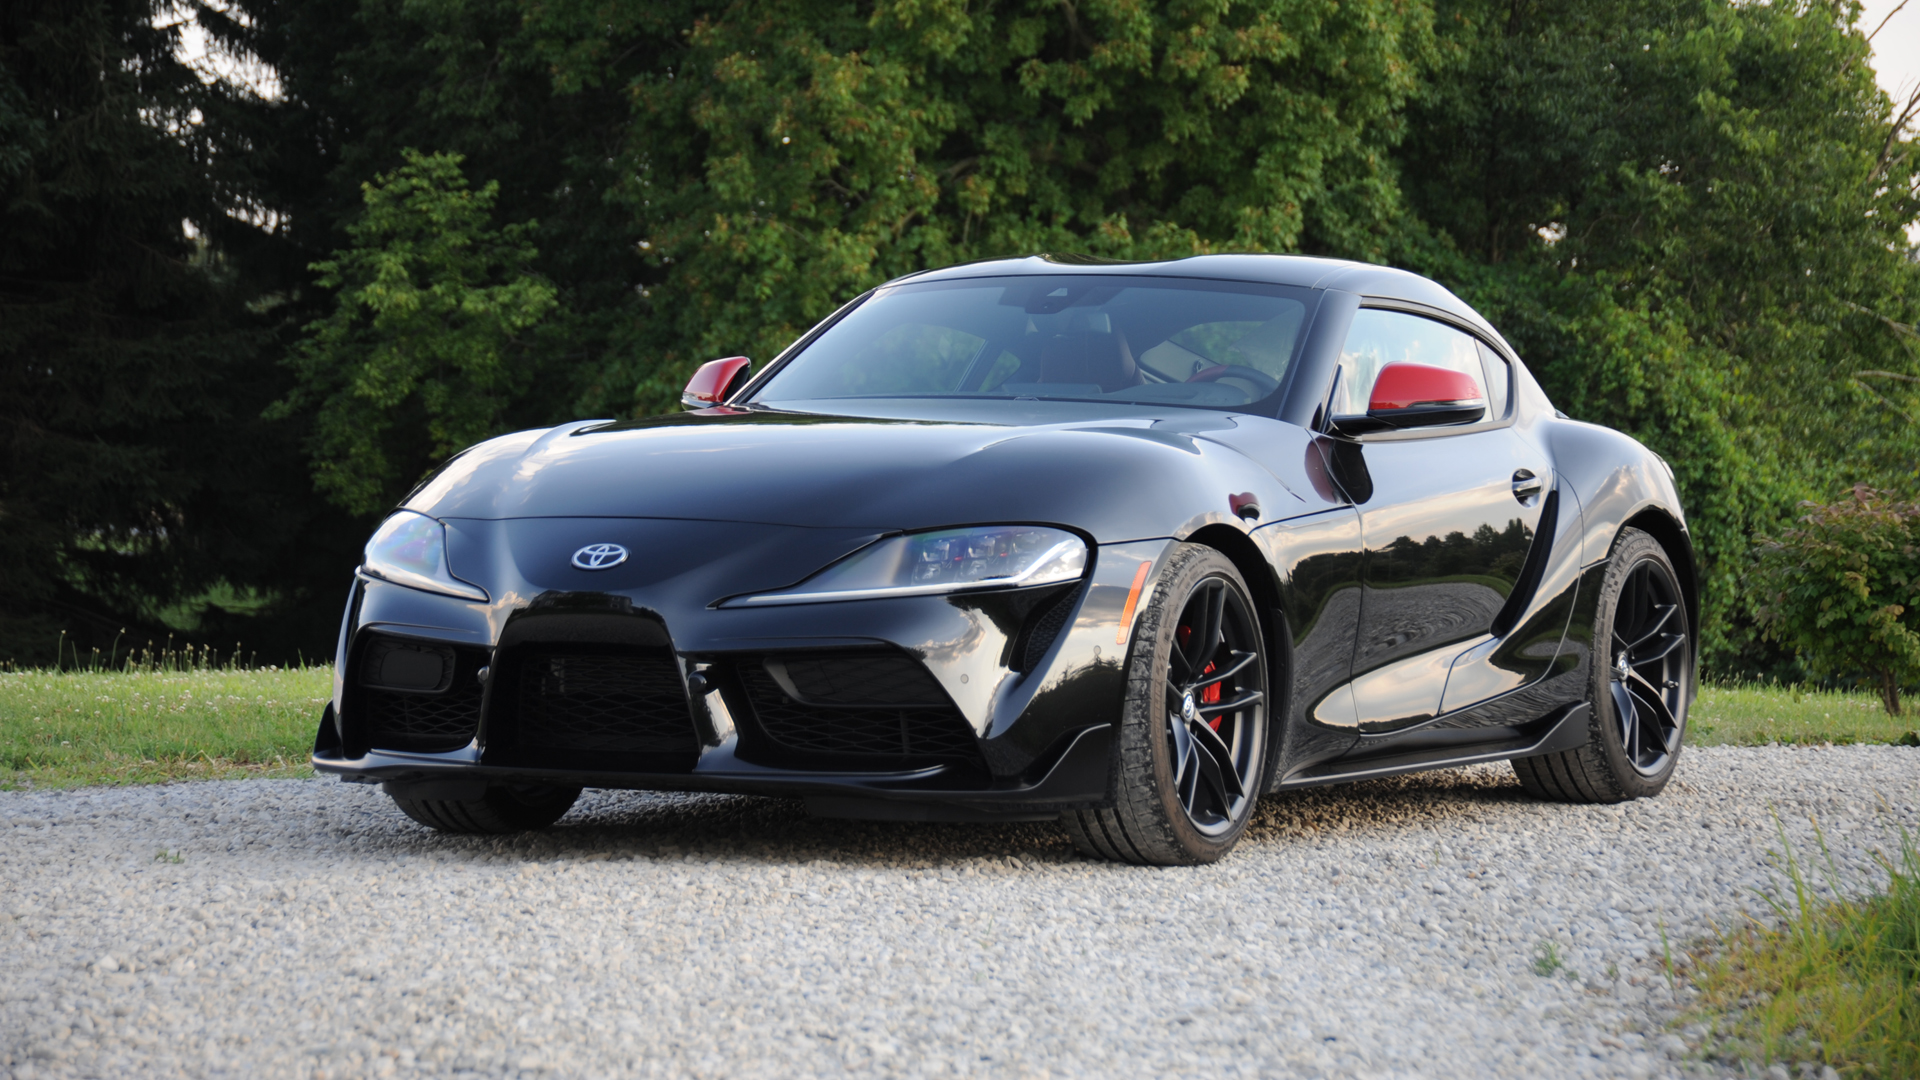 Texas tuning shop offering manual transmission conversion for 2020 Toyota Supra